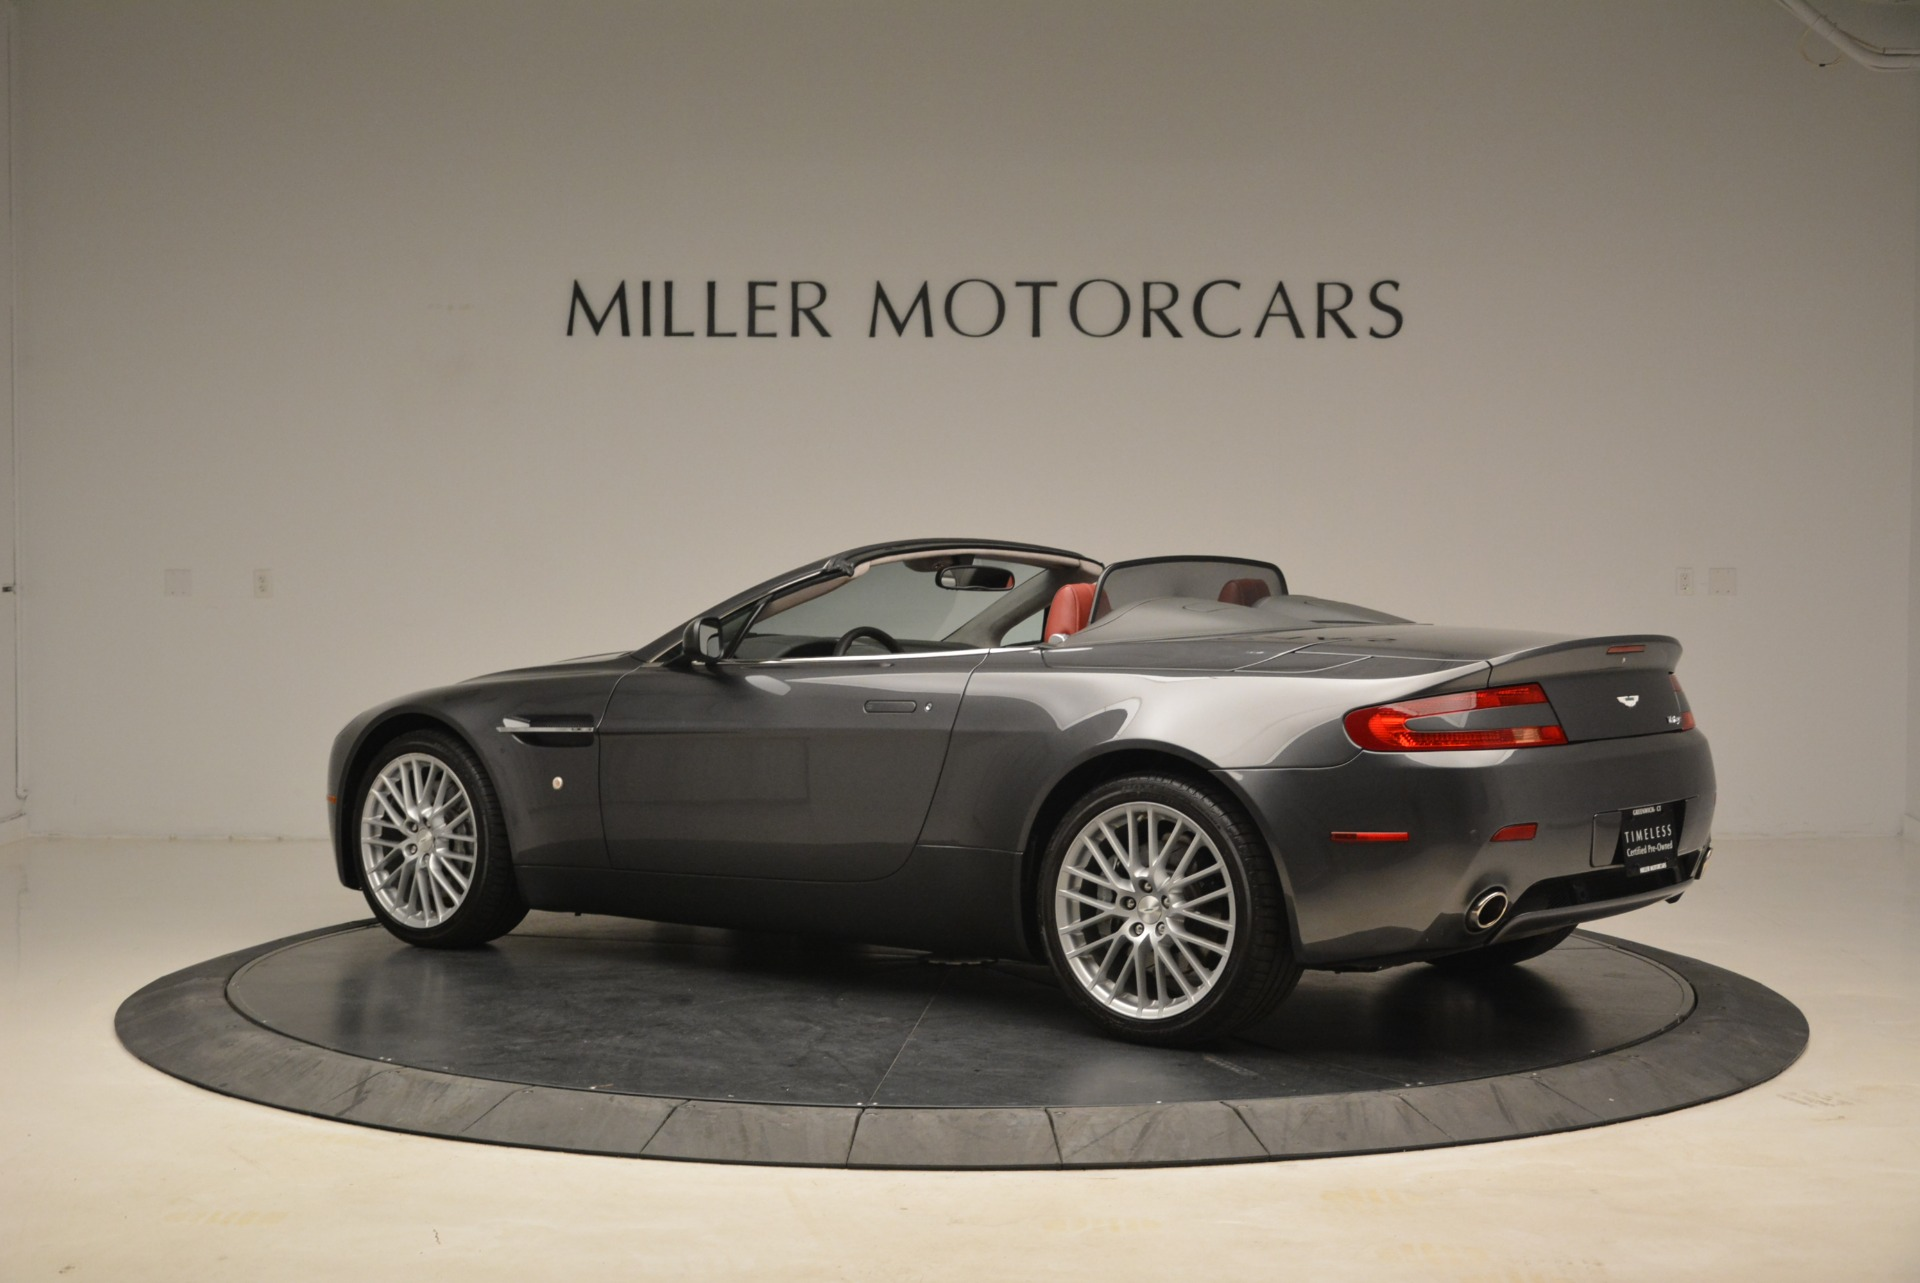 Used 2009 Aston Martin V8 Vantage Roadster For Sale In Greenwich, CT. Alfa Romeo of Greenwich, 7333 2123_p4